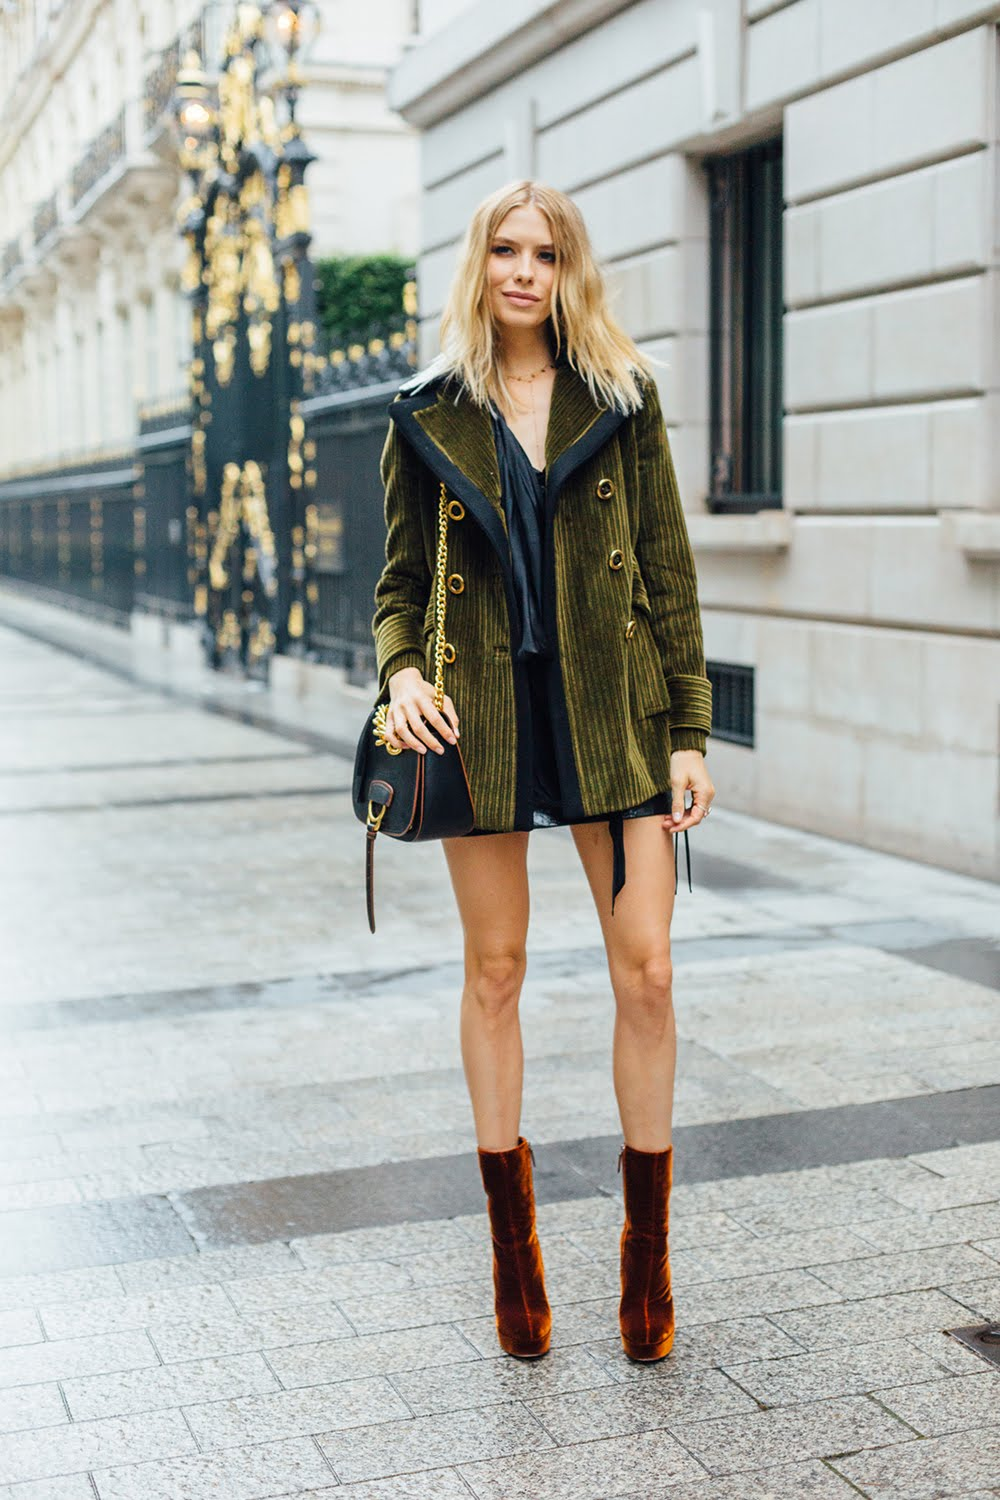 girl from north london, fashion blogger, ootd, outfit, pinterest round up, autumn fall